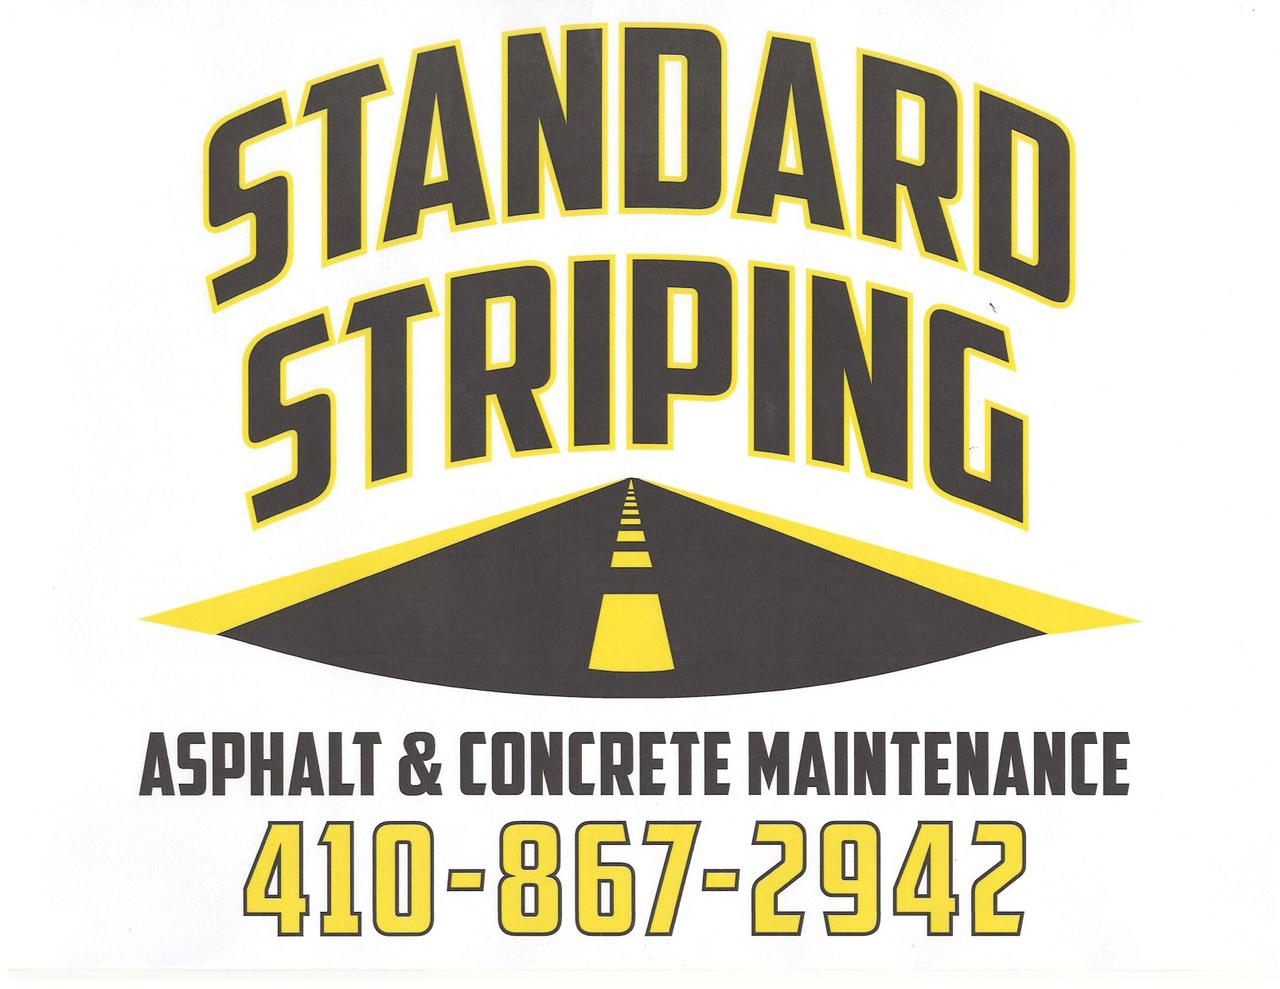 Standard Striping - concrete maintenance